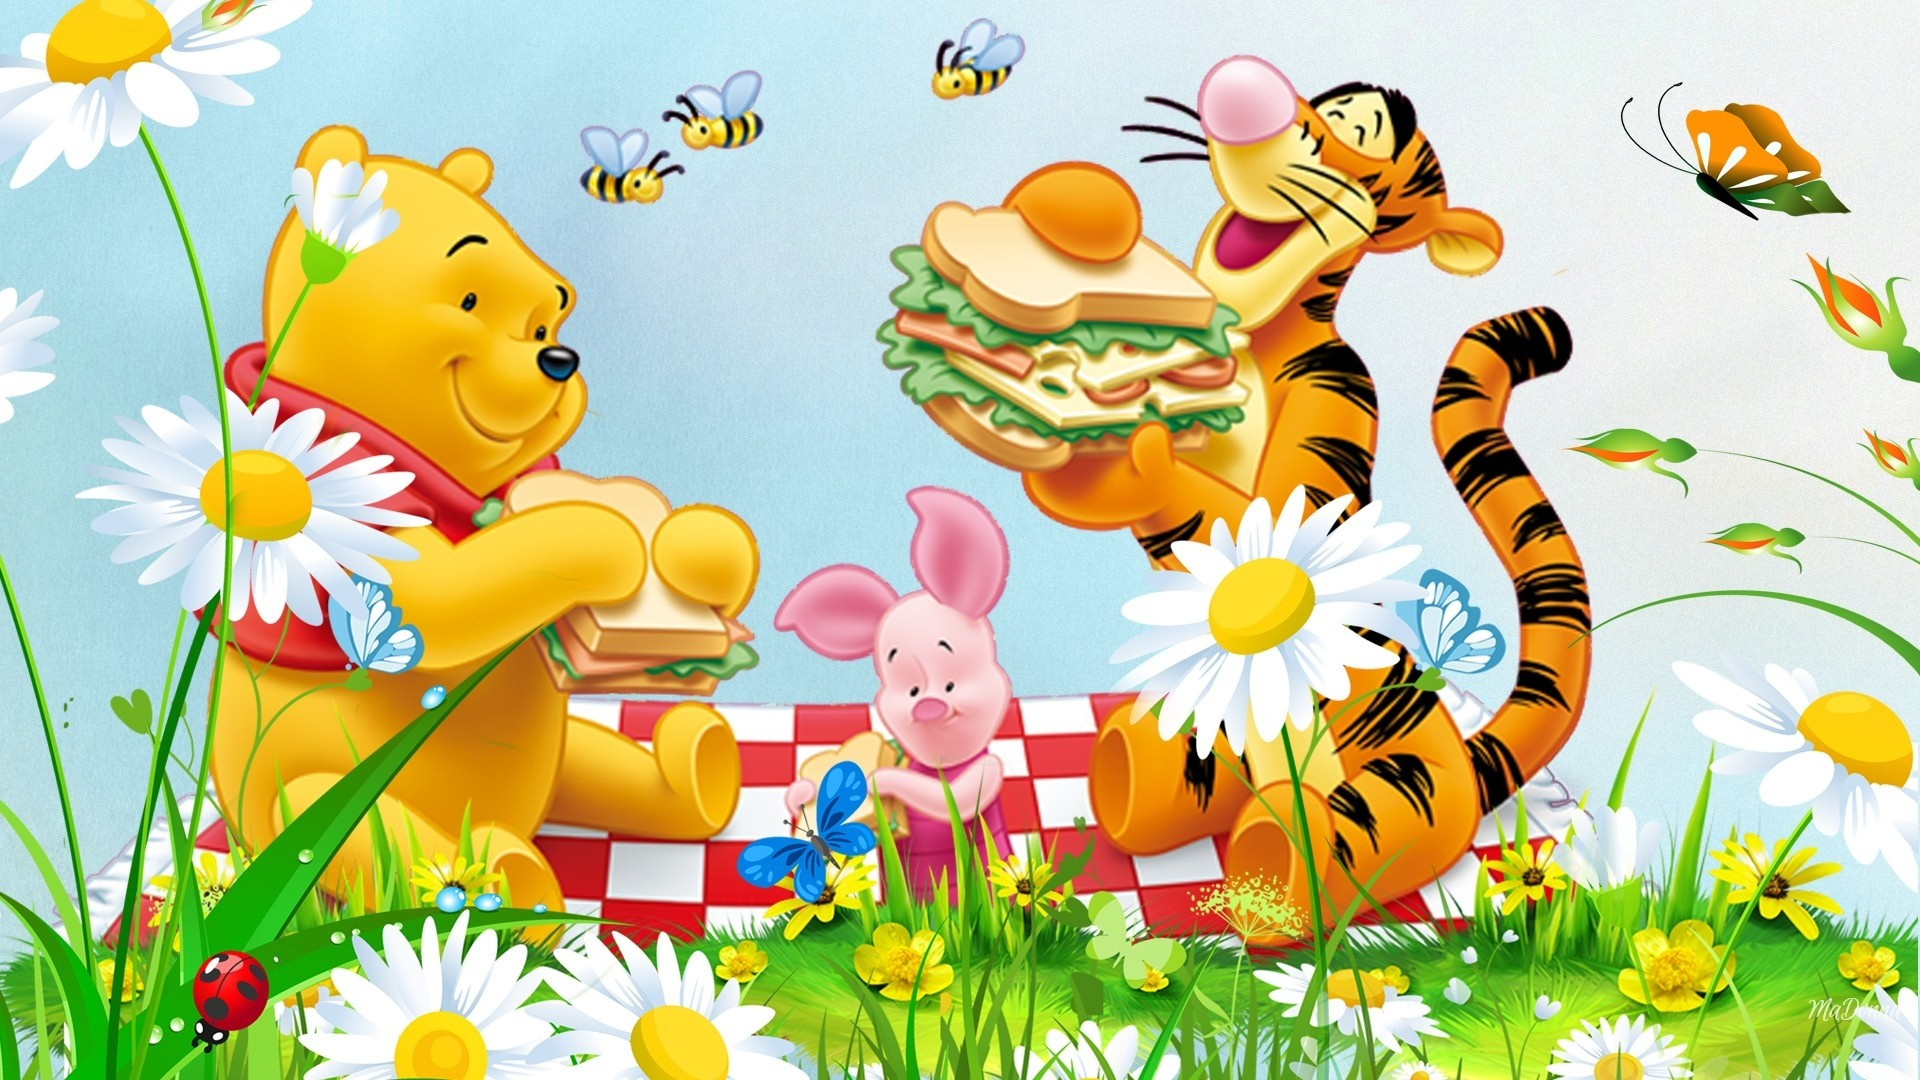 Iphone X Frame Wallpaper Picnic Flowers Grass Bee Winnie The Pooh Tigger And Piglet